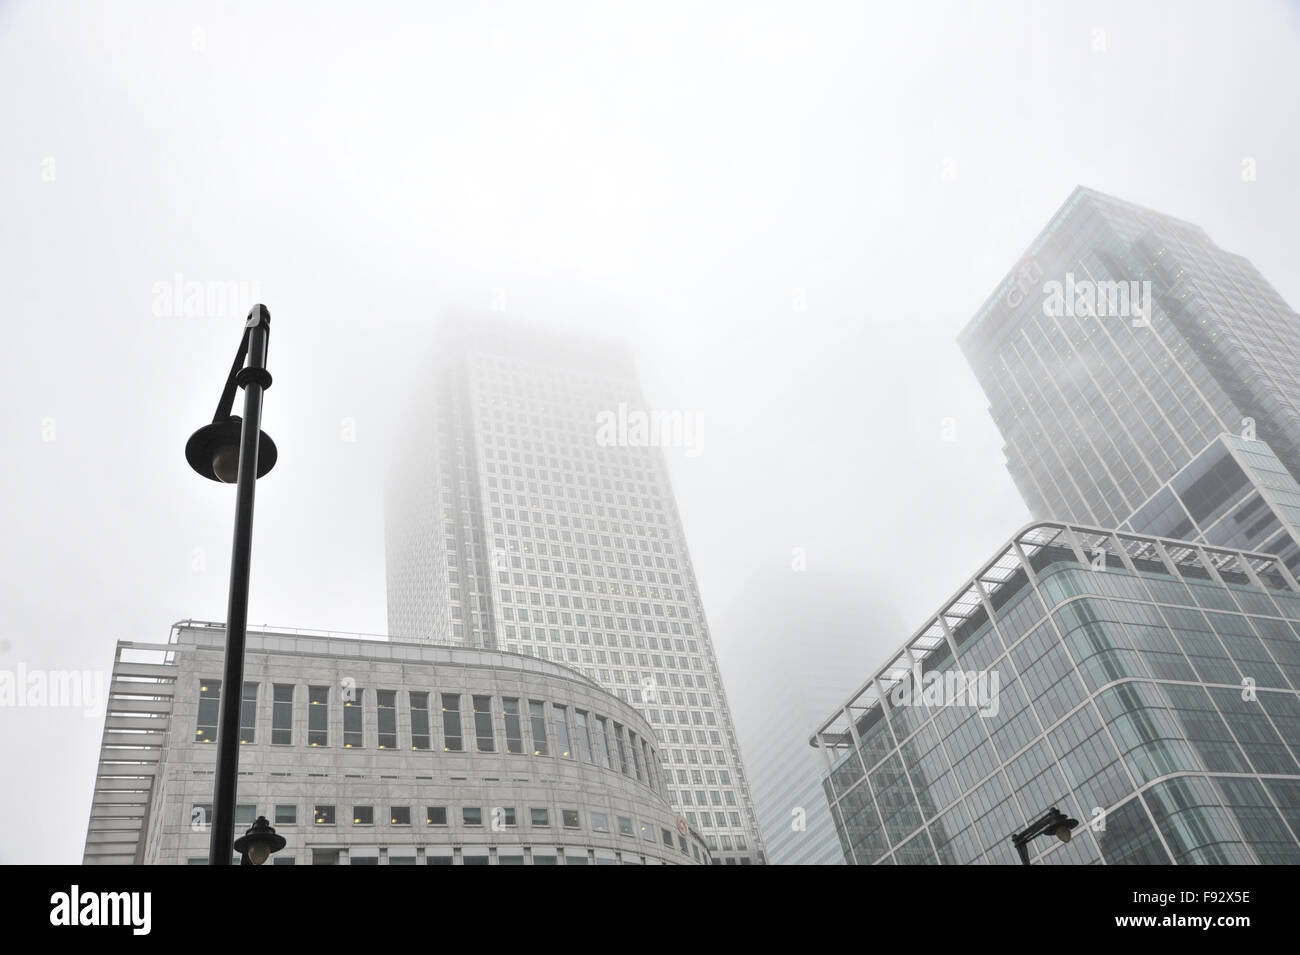 Canary Wharf, London, UK. 13th December 2015. UK Weather: Misty, murky weather in Canary Wharf Credit:  Matthew - Stock Image